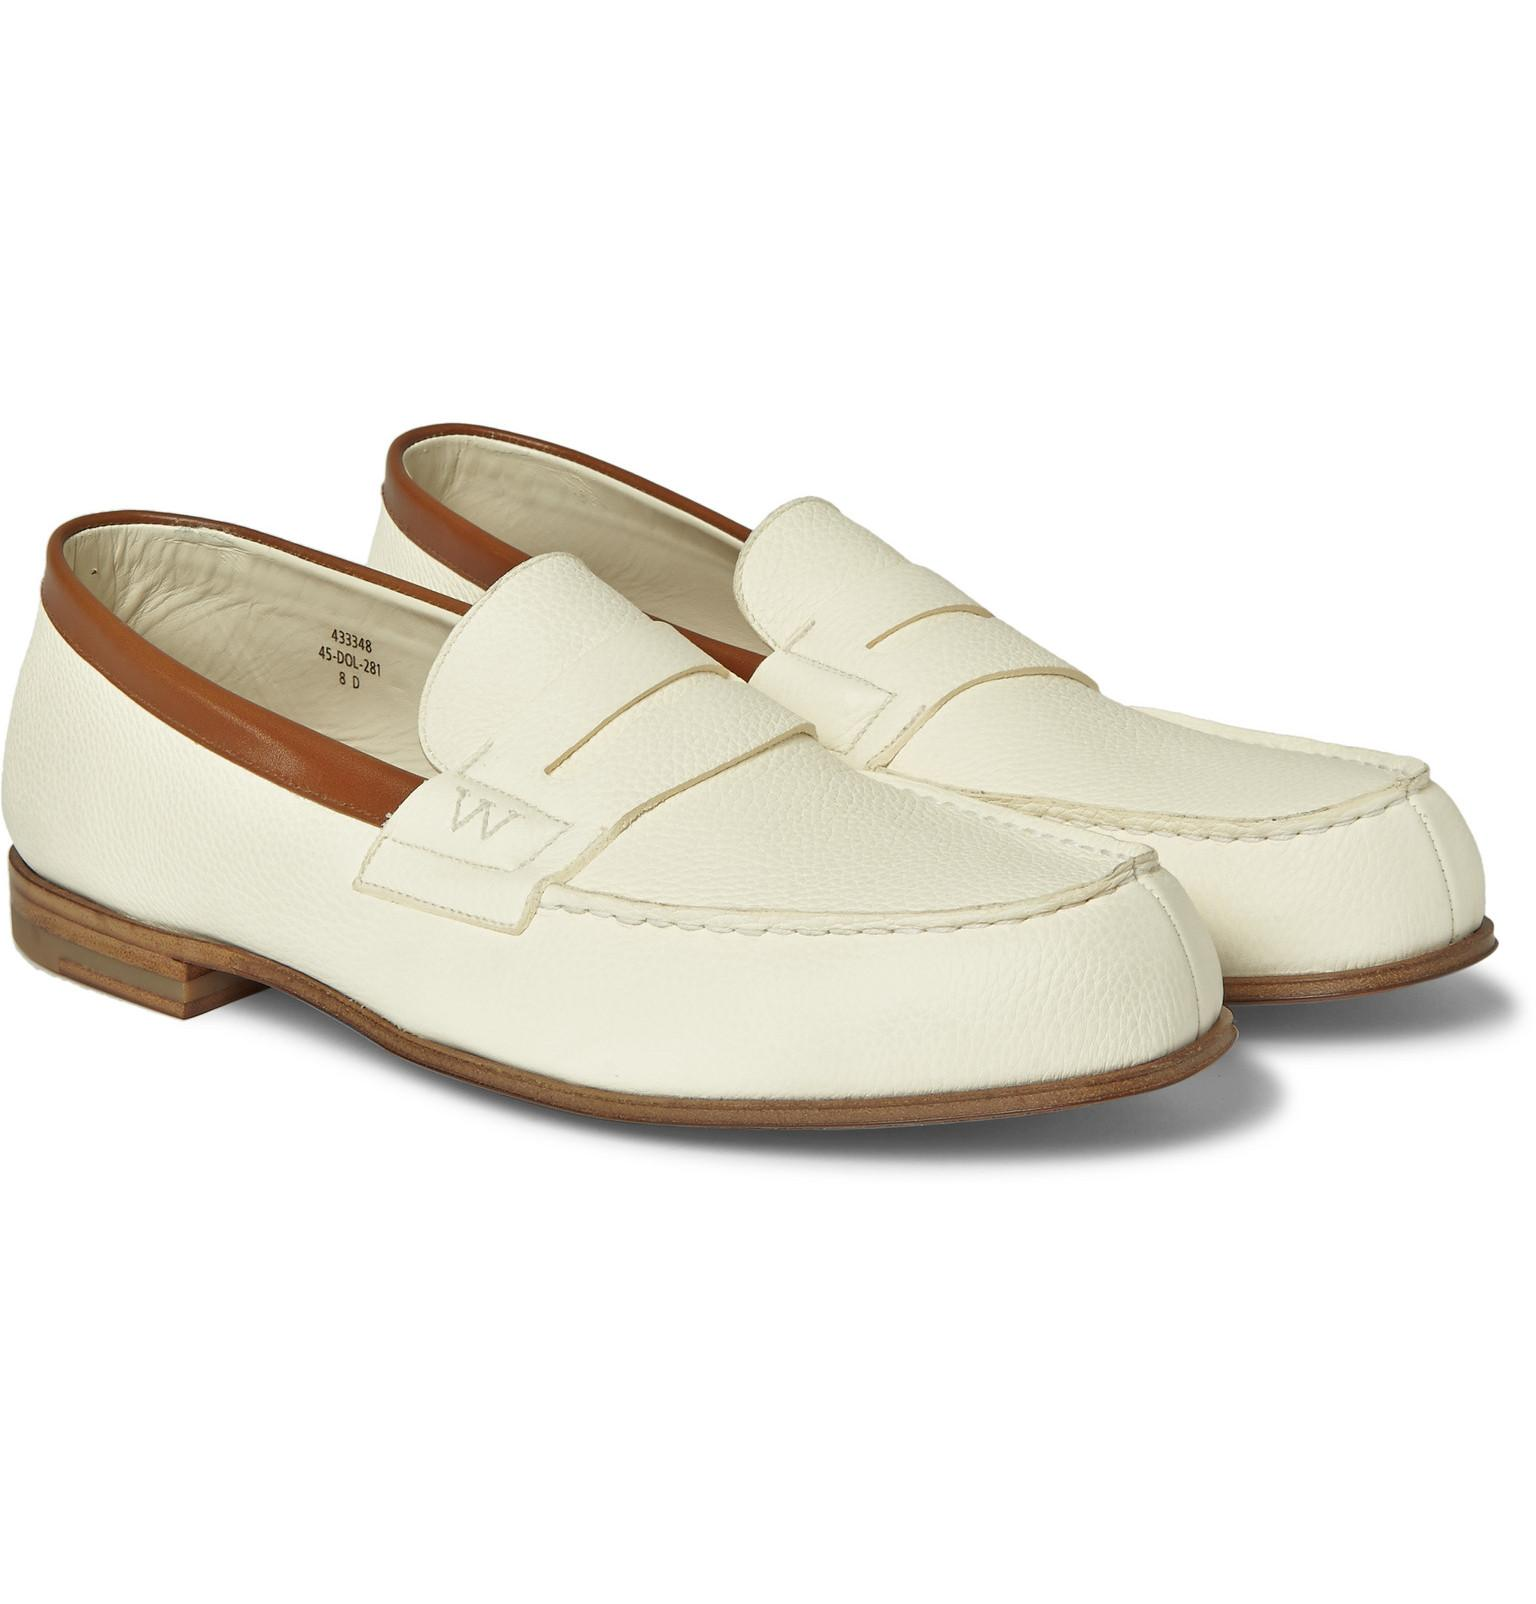 Le Meilleur J M Weston 281 Le Moc Textured Leather Loafers In White Ce Mois Ci